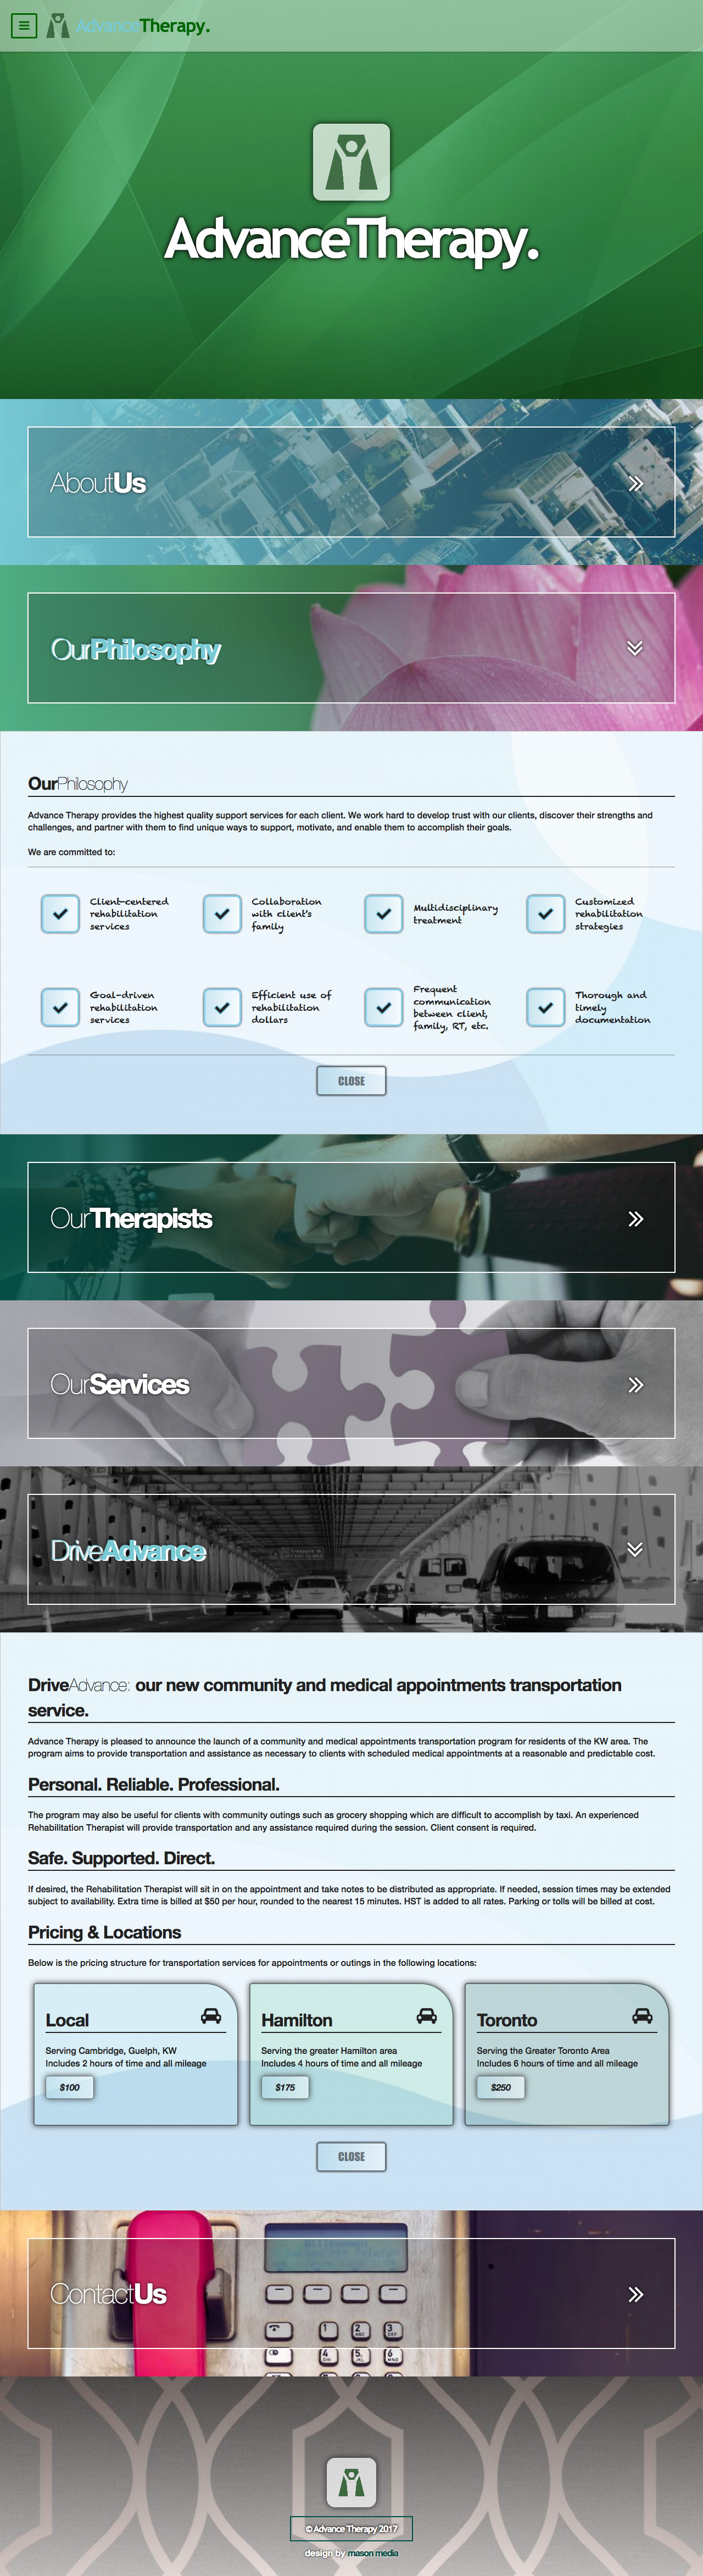 Advance Therapy full website